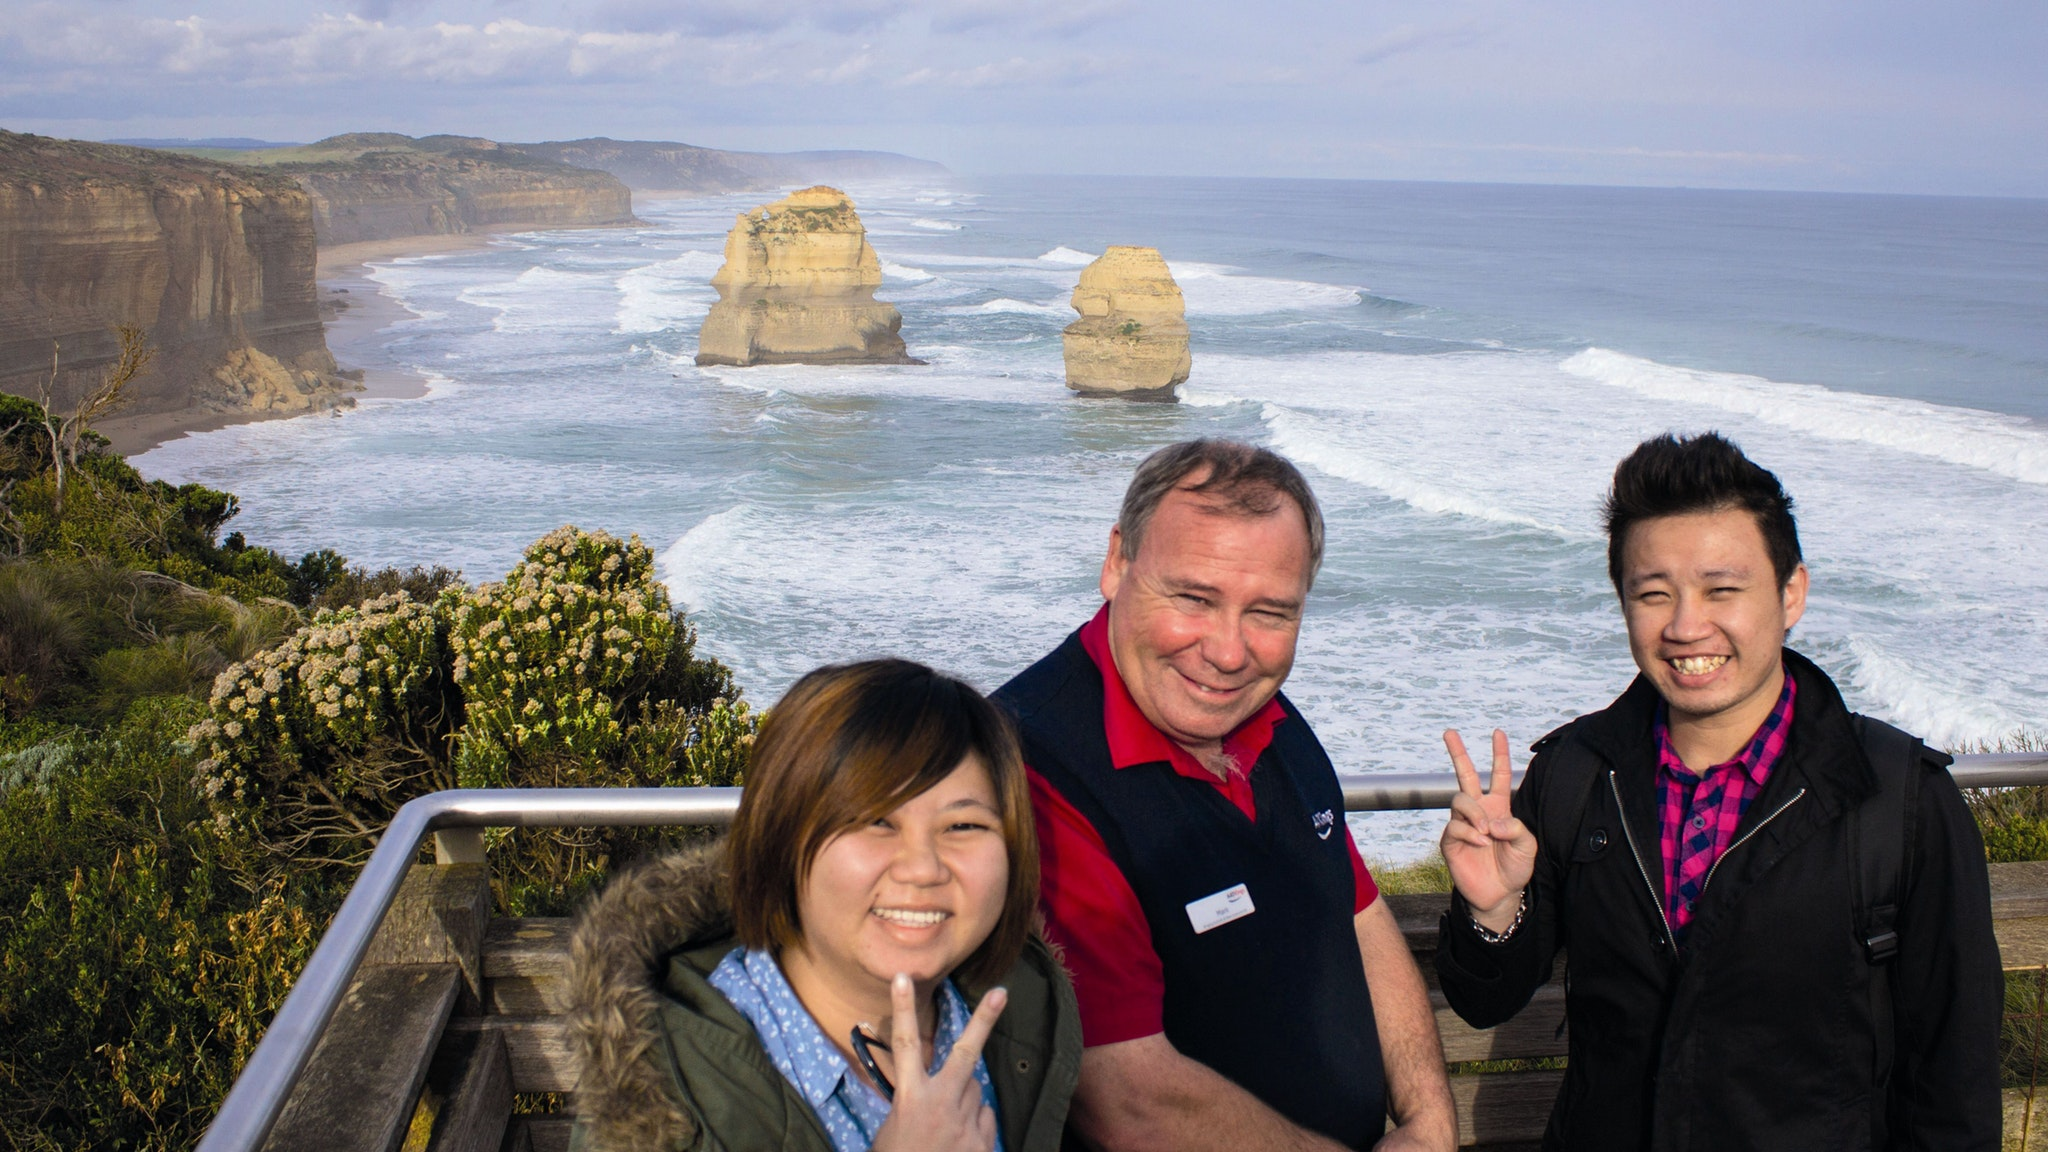 AAT Kings guide and guests at the Twelve Apostles